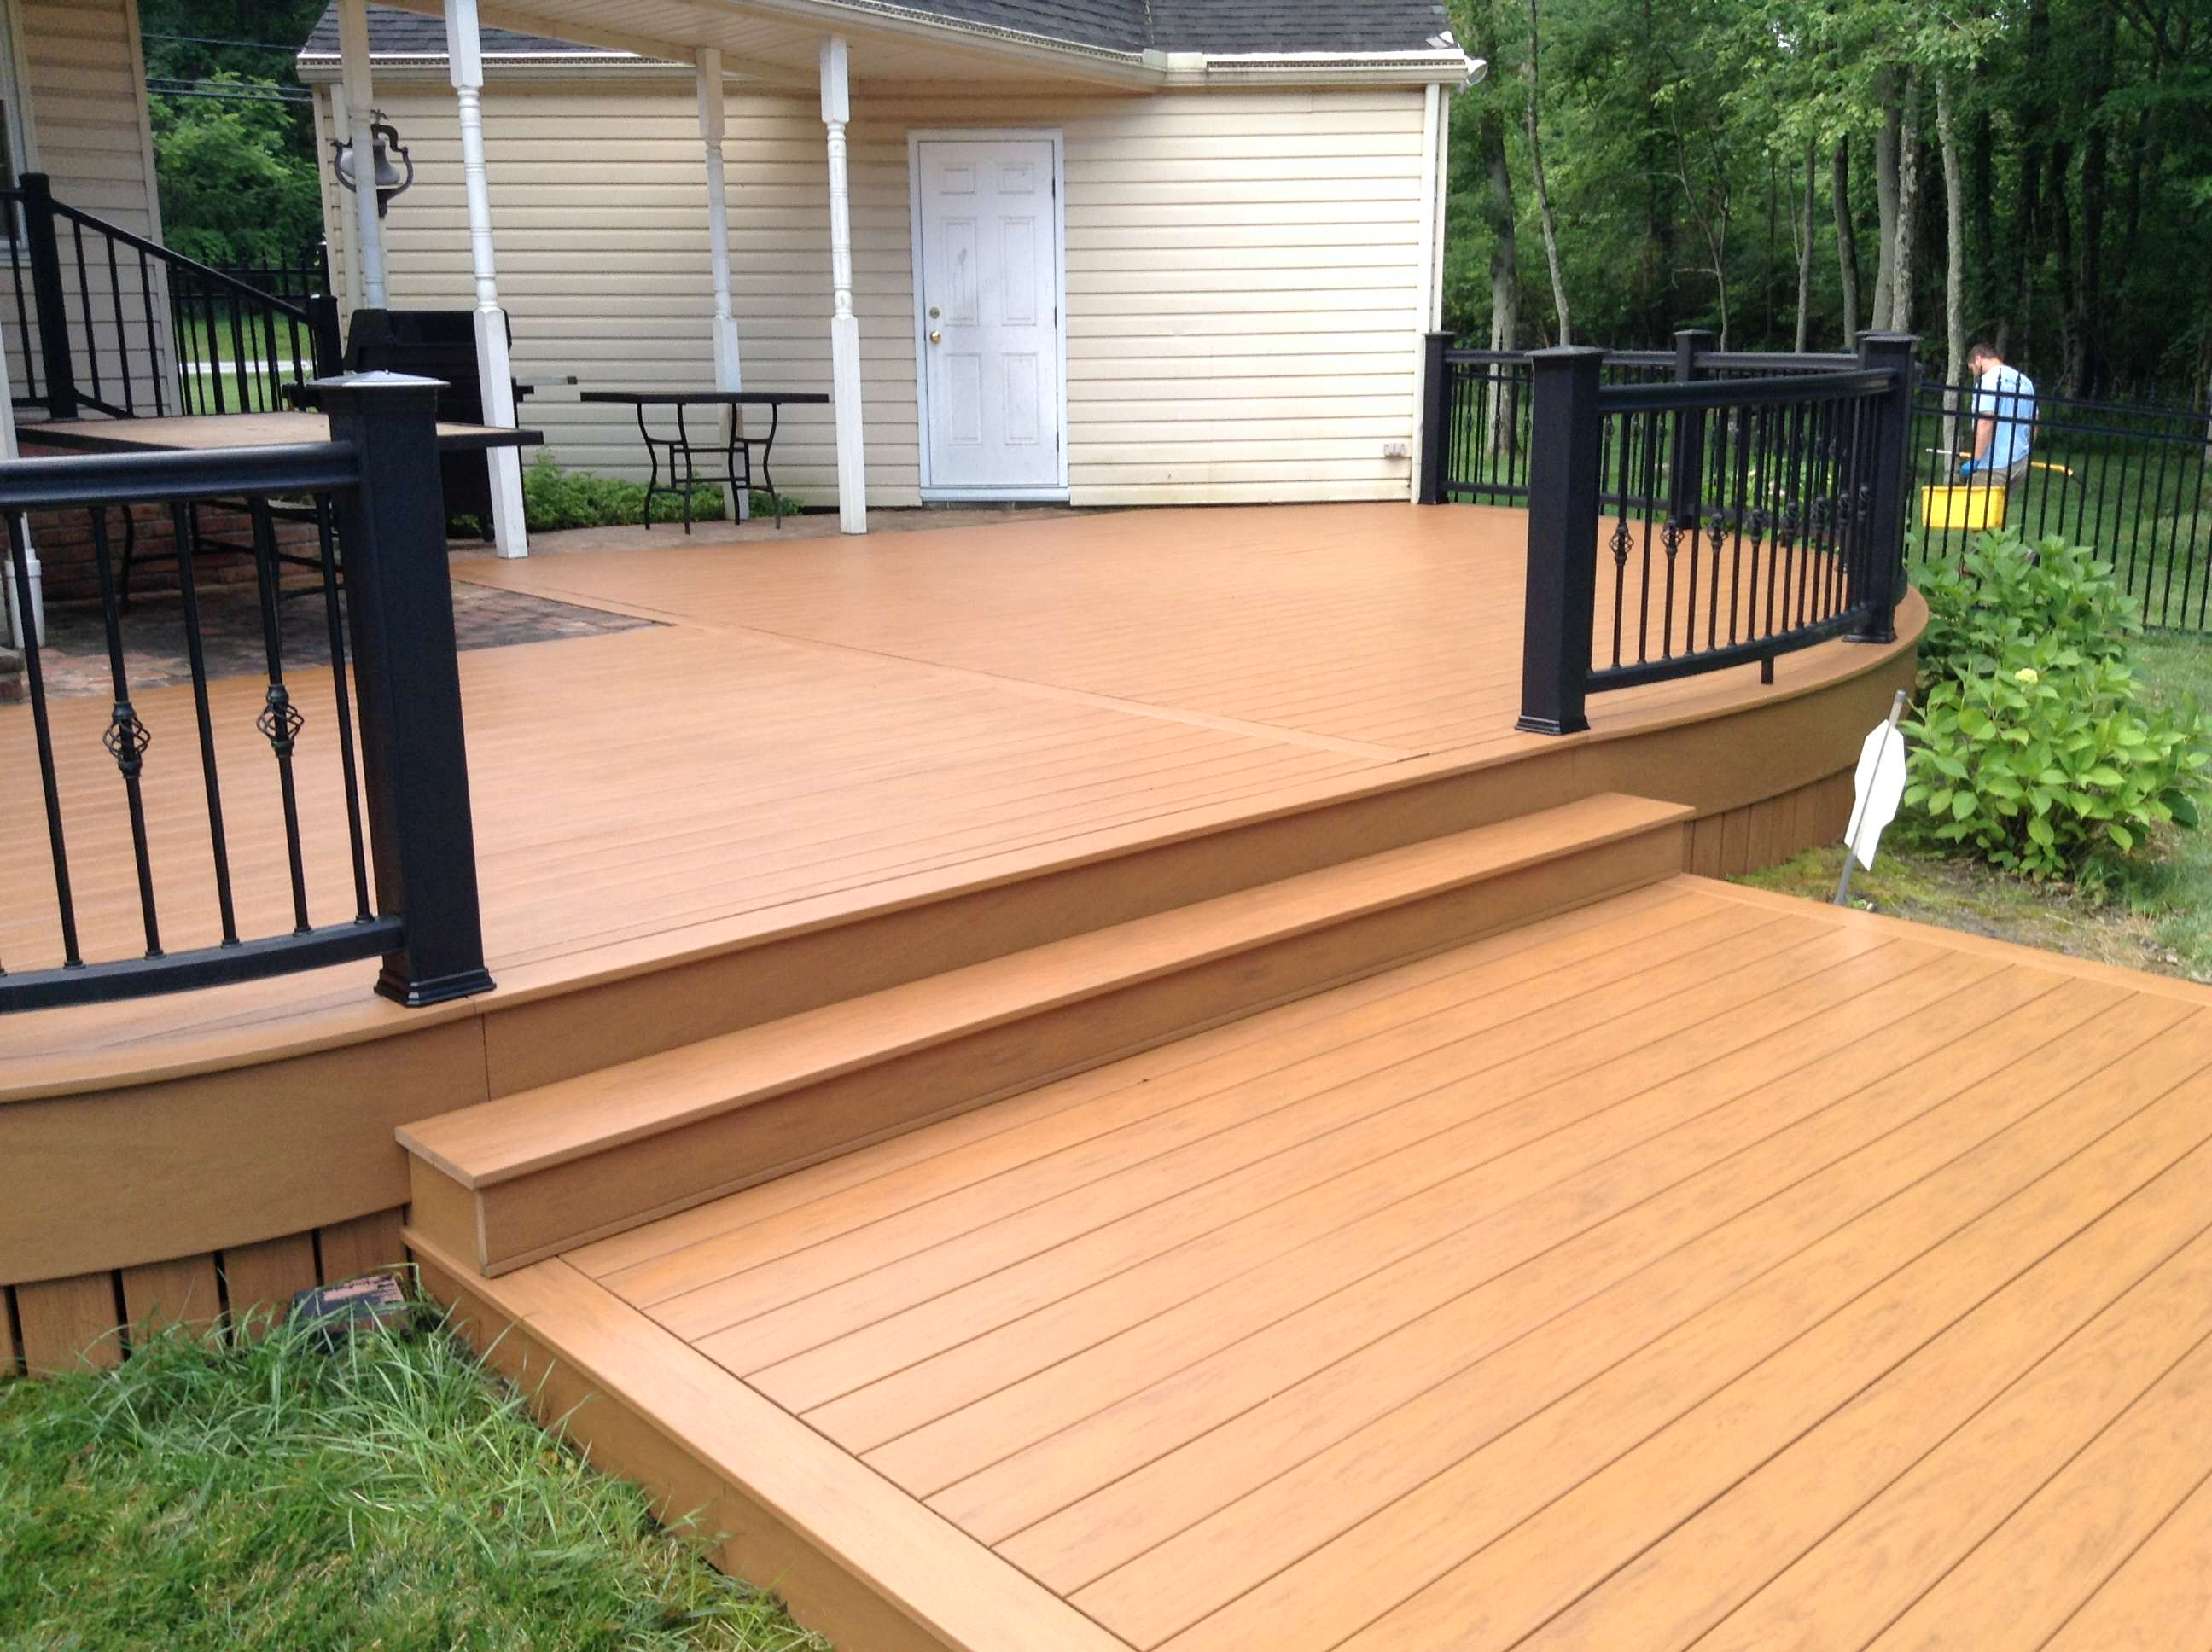 after DeckMax Cleaning service